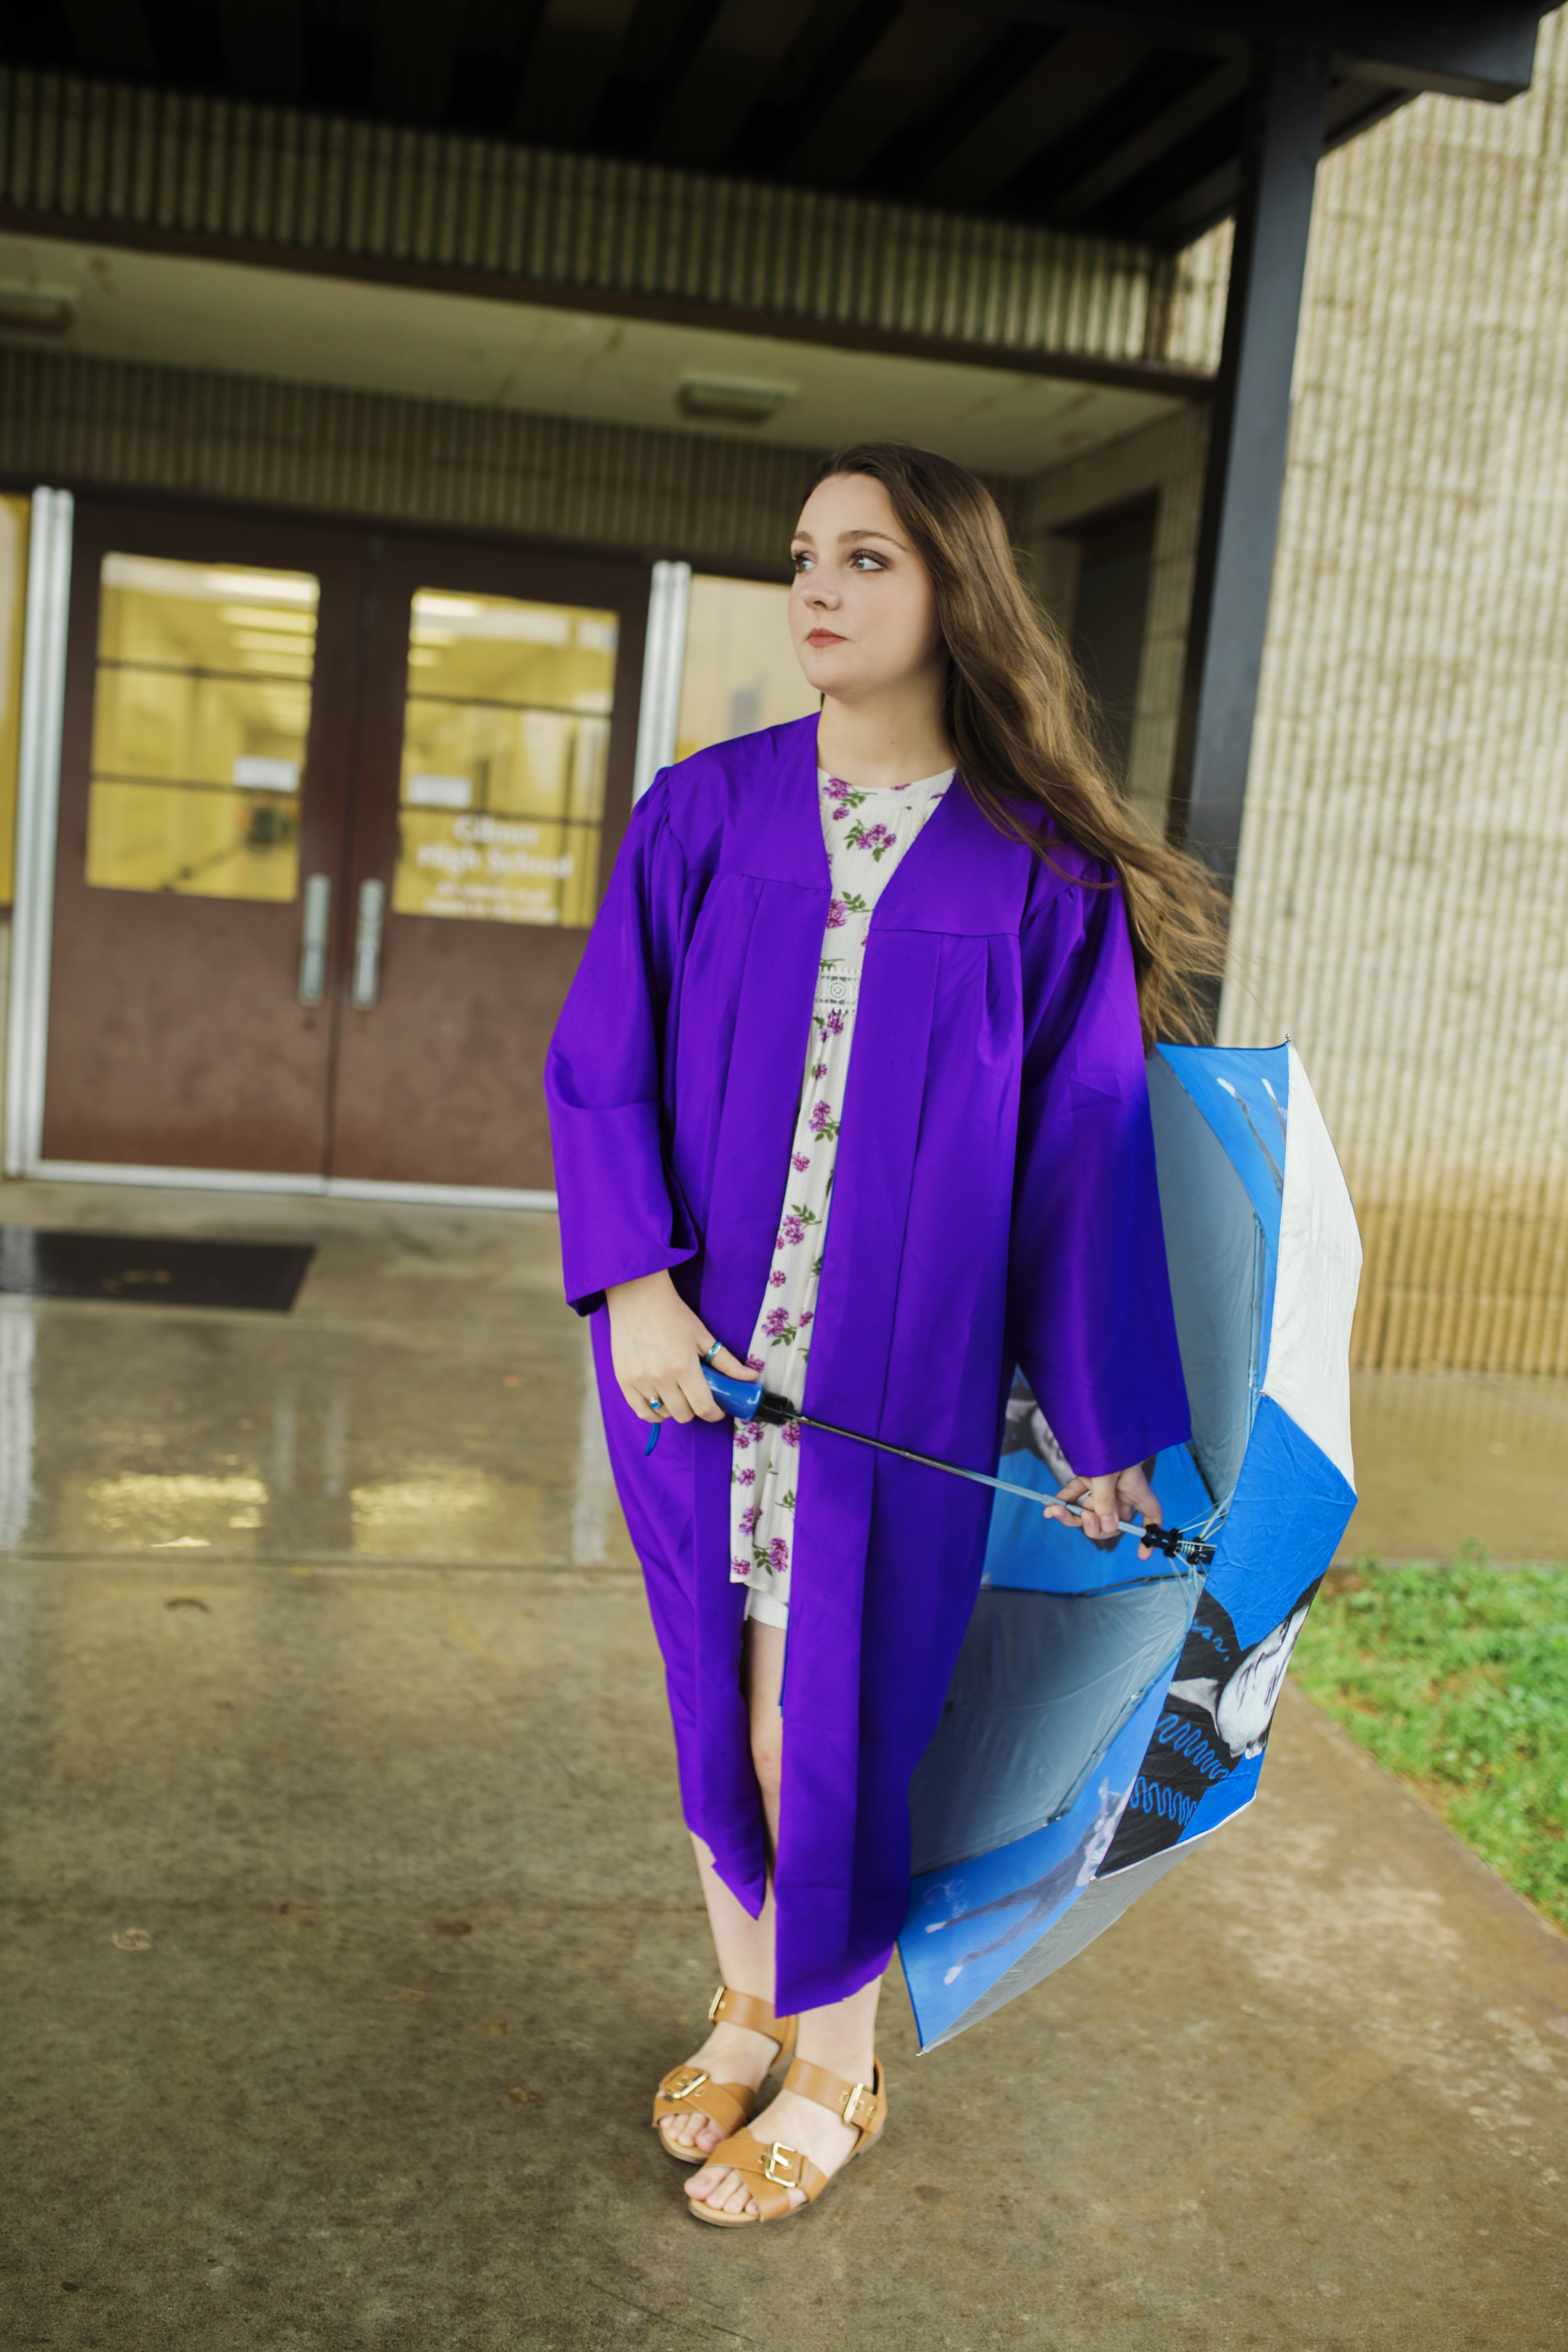 abby cap and gown 148.JPG